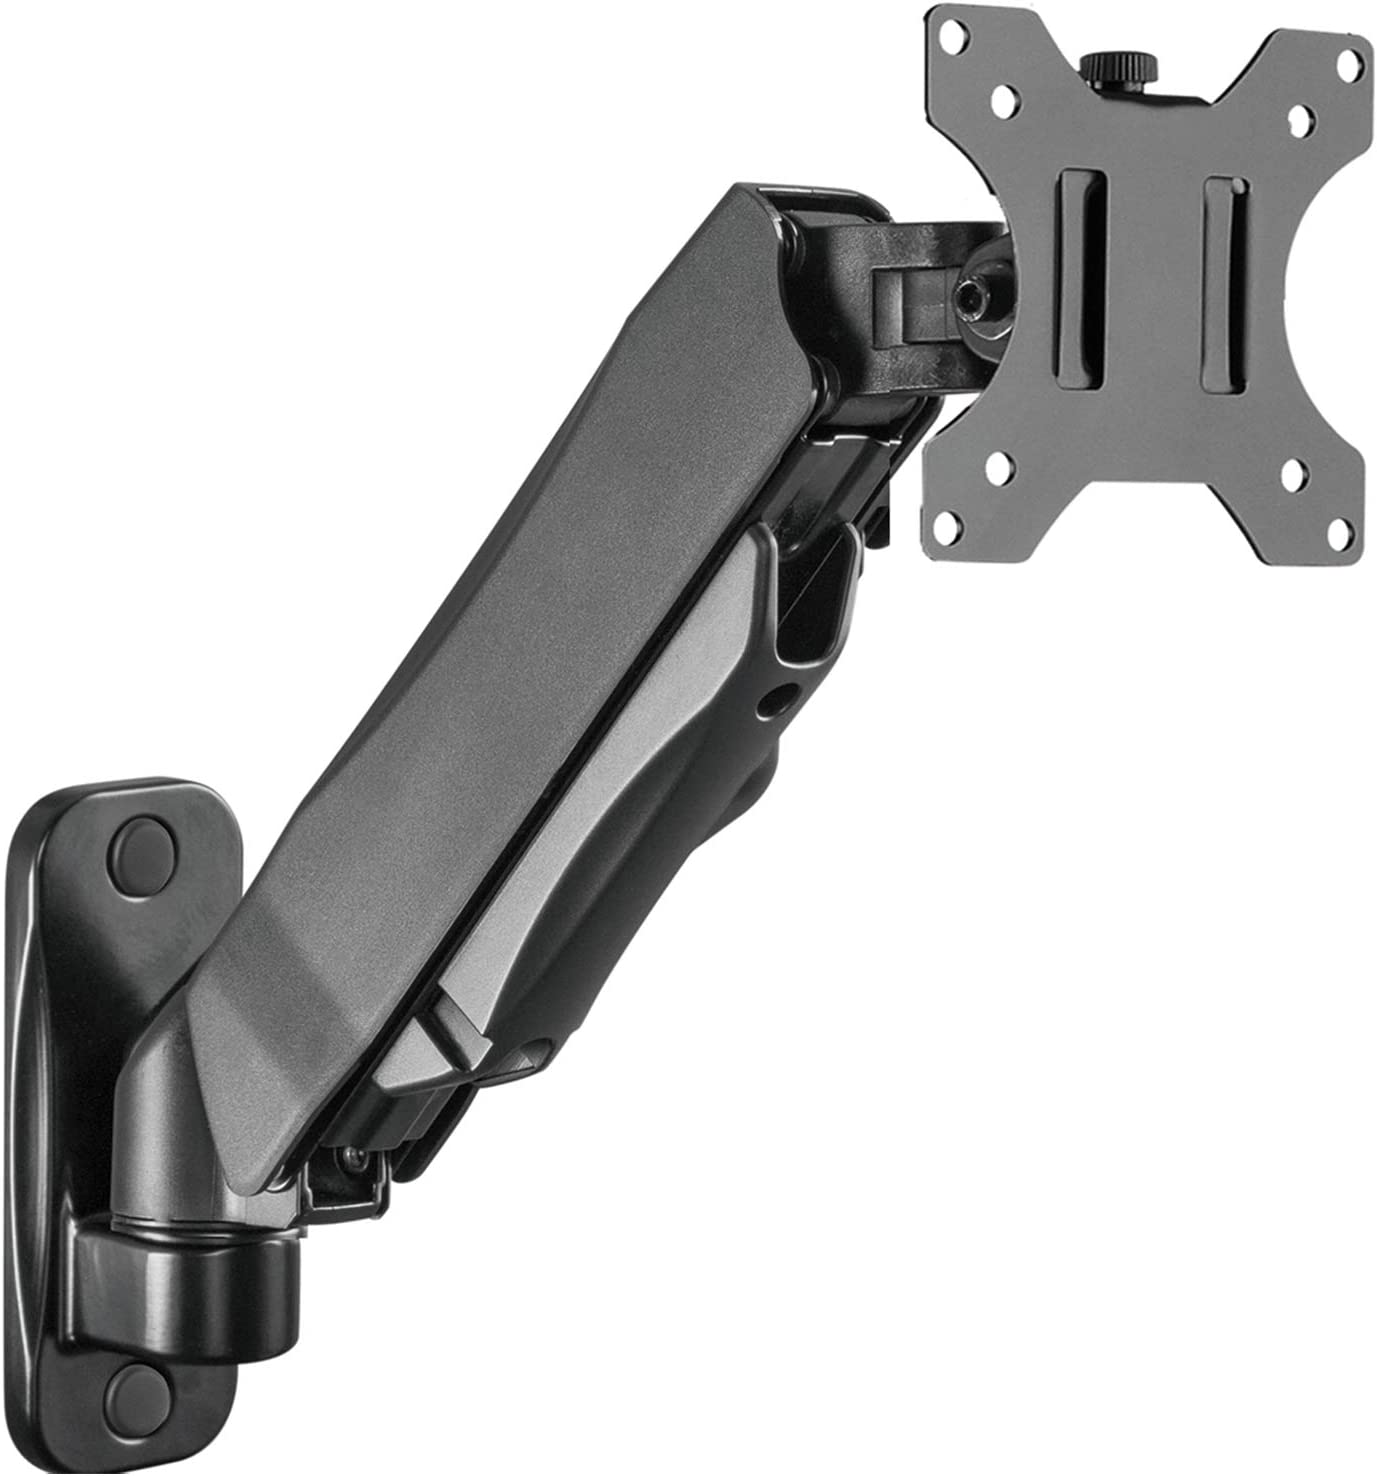 WALI Single LCD Monitor Gas Spring Wall Mount Fully Adjustable Fits 1 Screen up to 27 inch, 14.3 lbs Weight Capacity, Arm Max Extension 13.4 inch (GSWM001S), Black